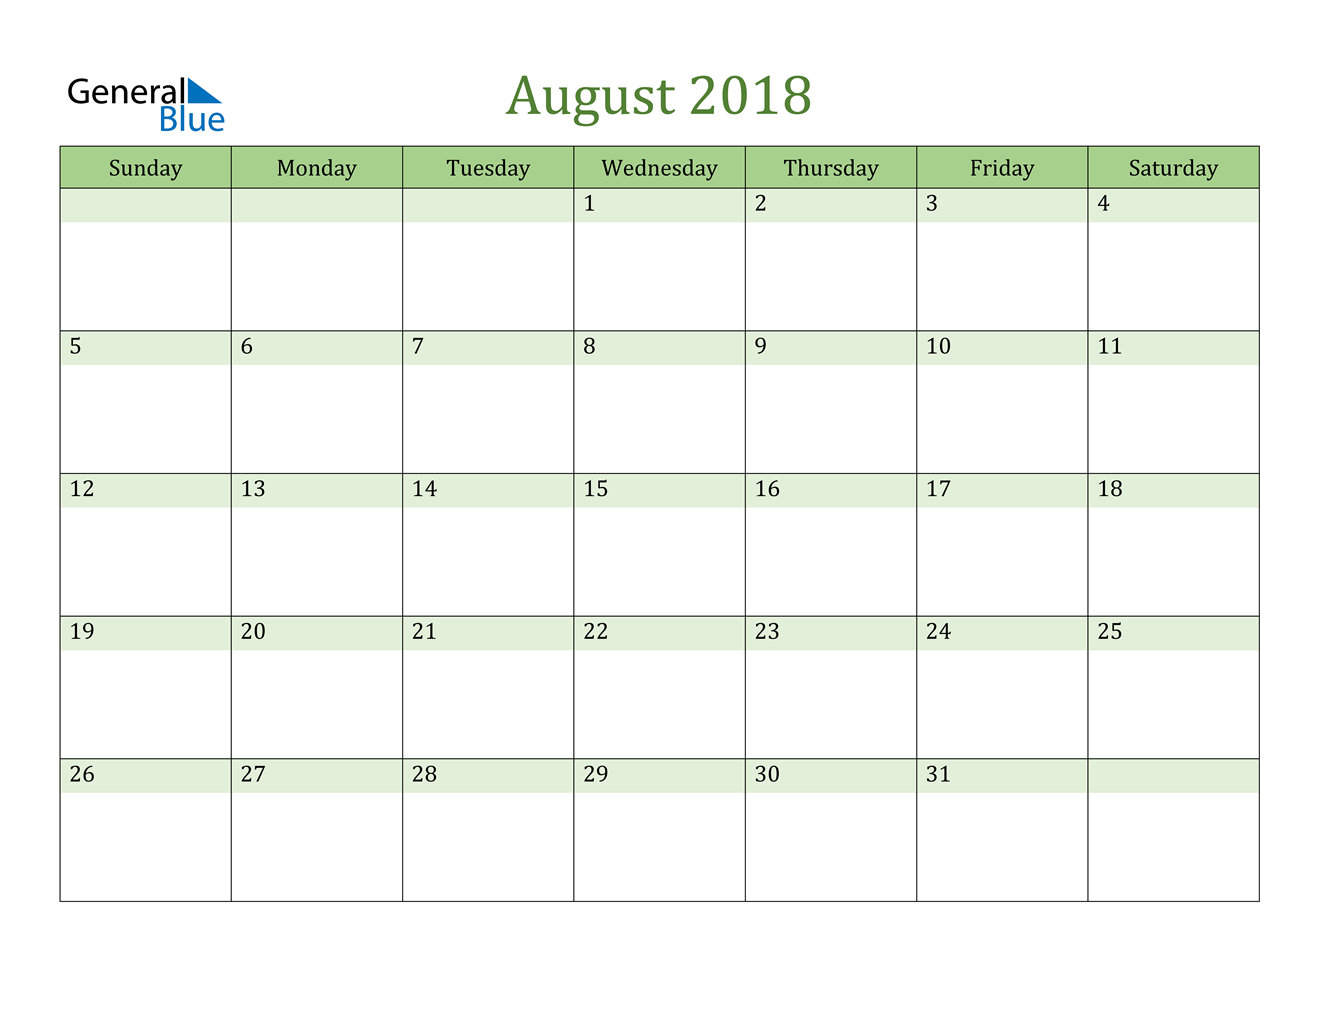 Image of August 2018 Cool and Relaxing Green Calendar Calendar